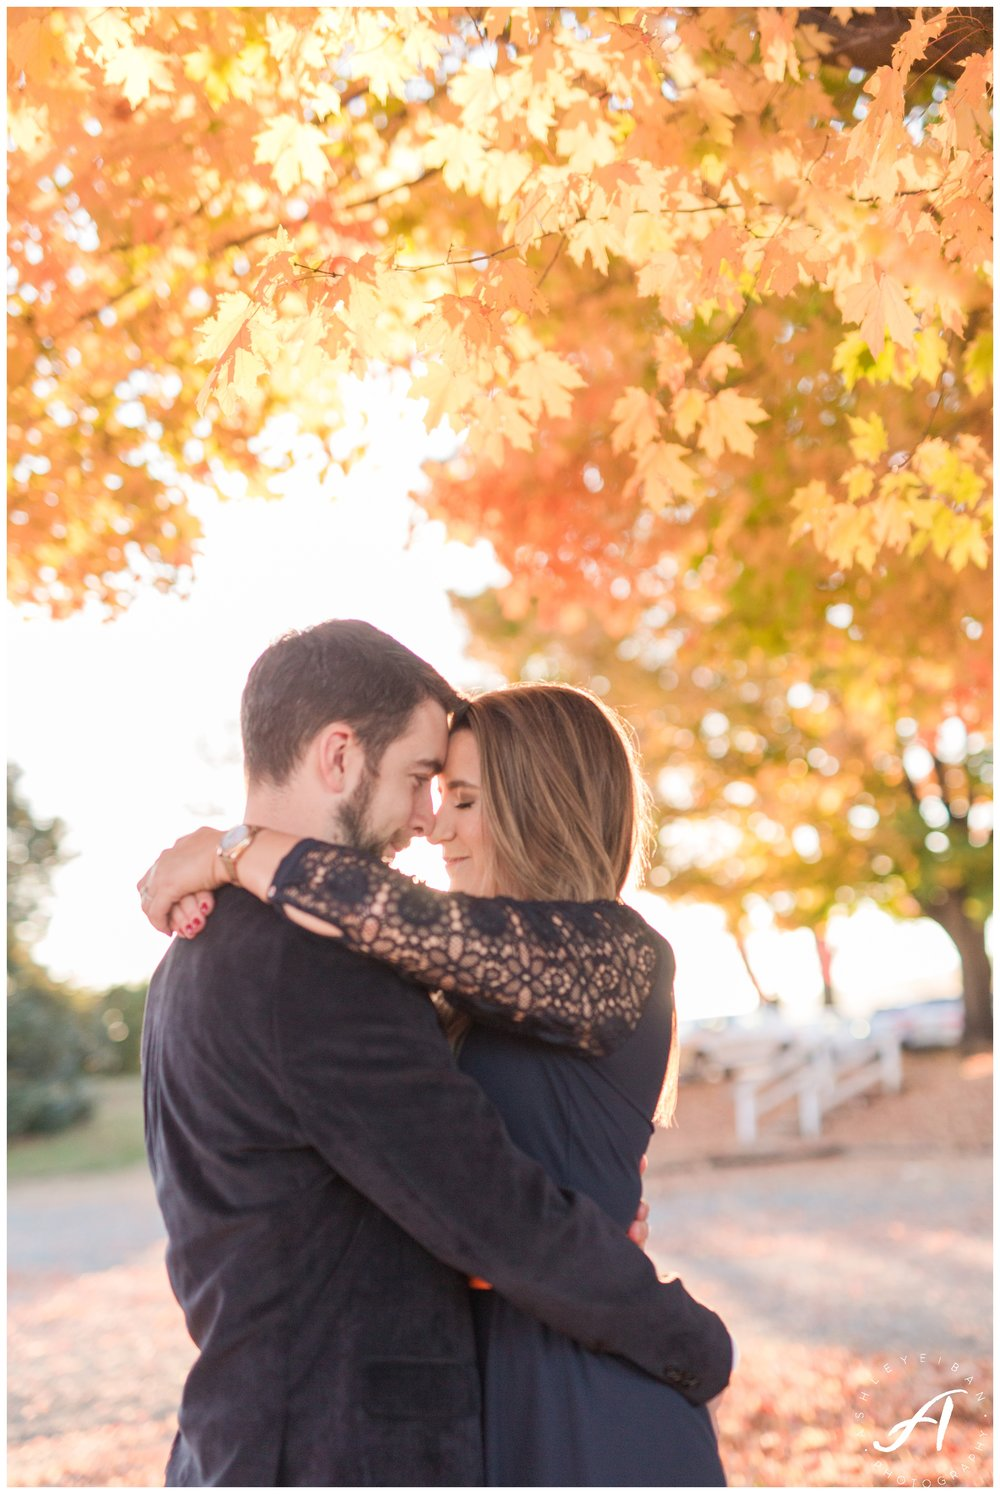 Ashlawn-Highland Engagement Session || Charlottesville Wedding and Engagement photographer || Central Virginia Fall Photos ||  www.ashleyeiban.com